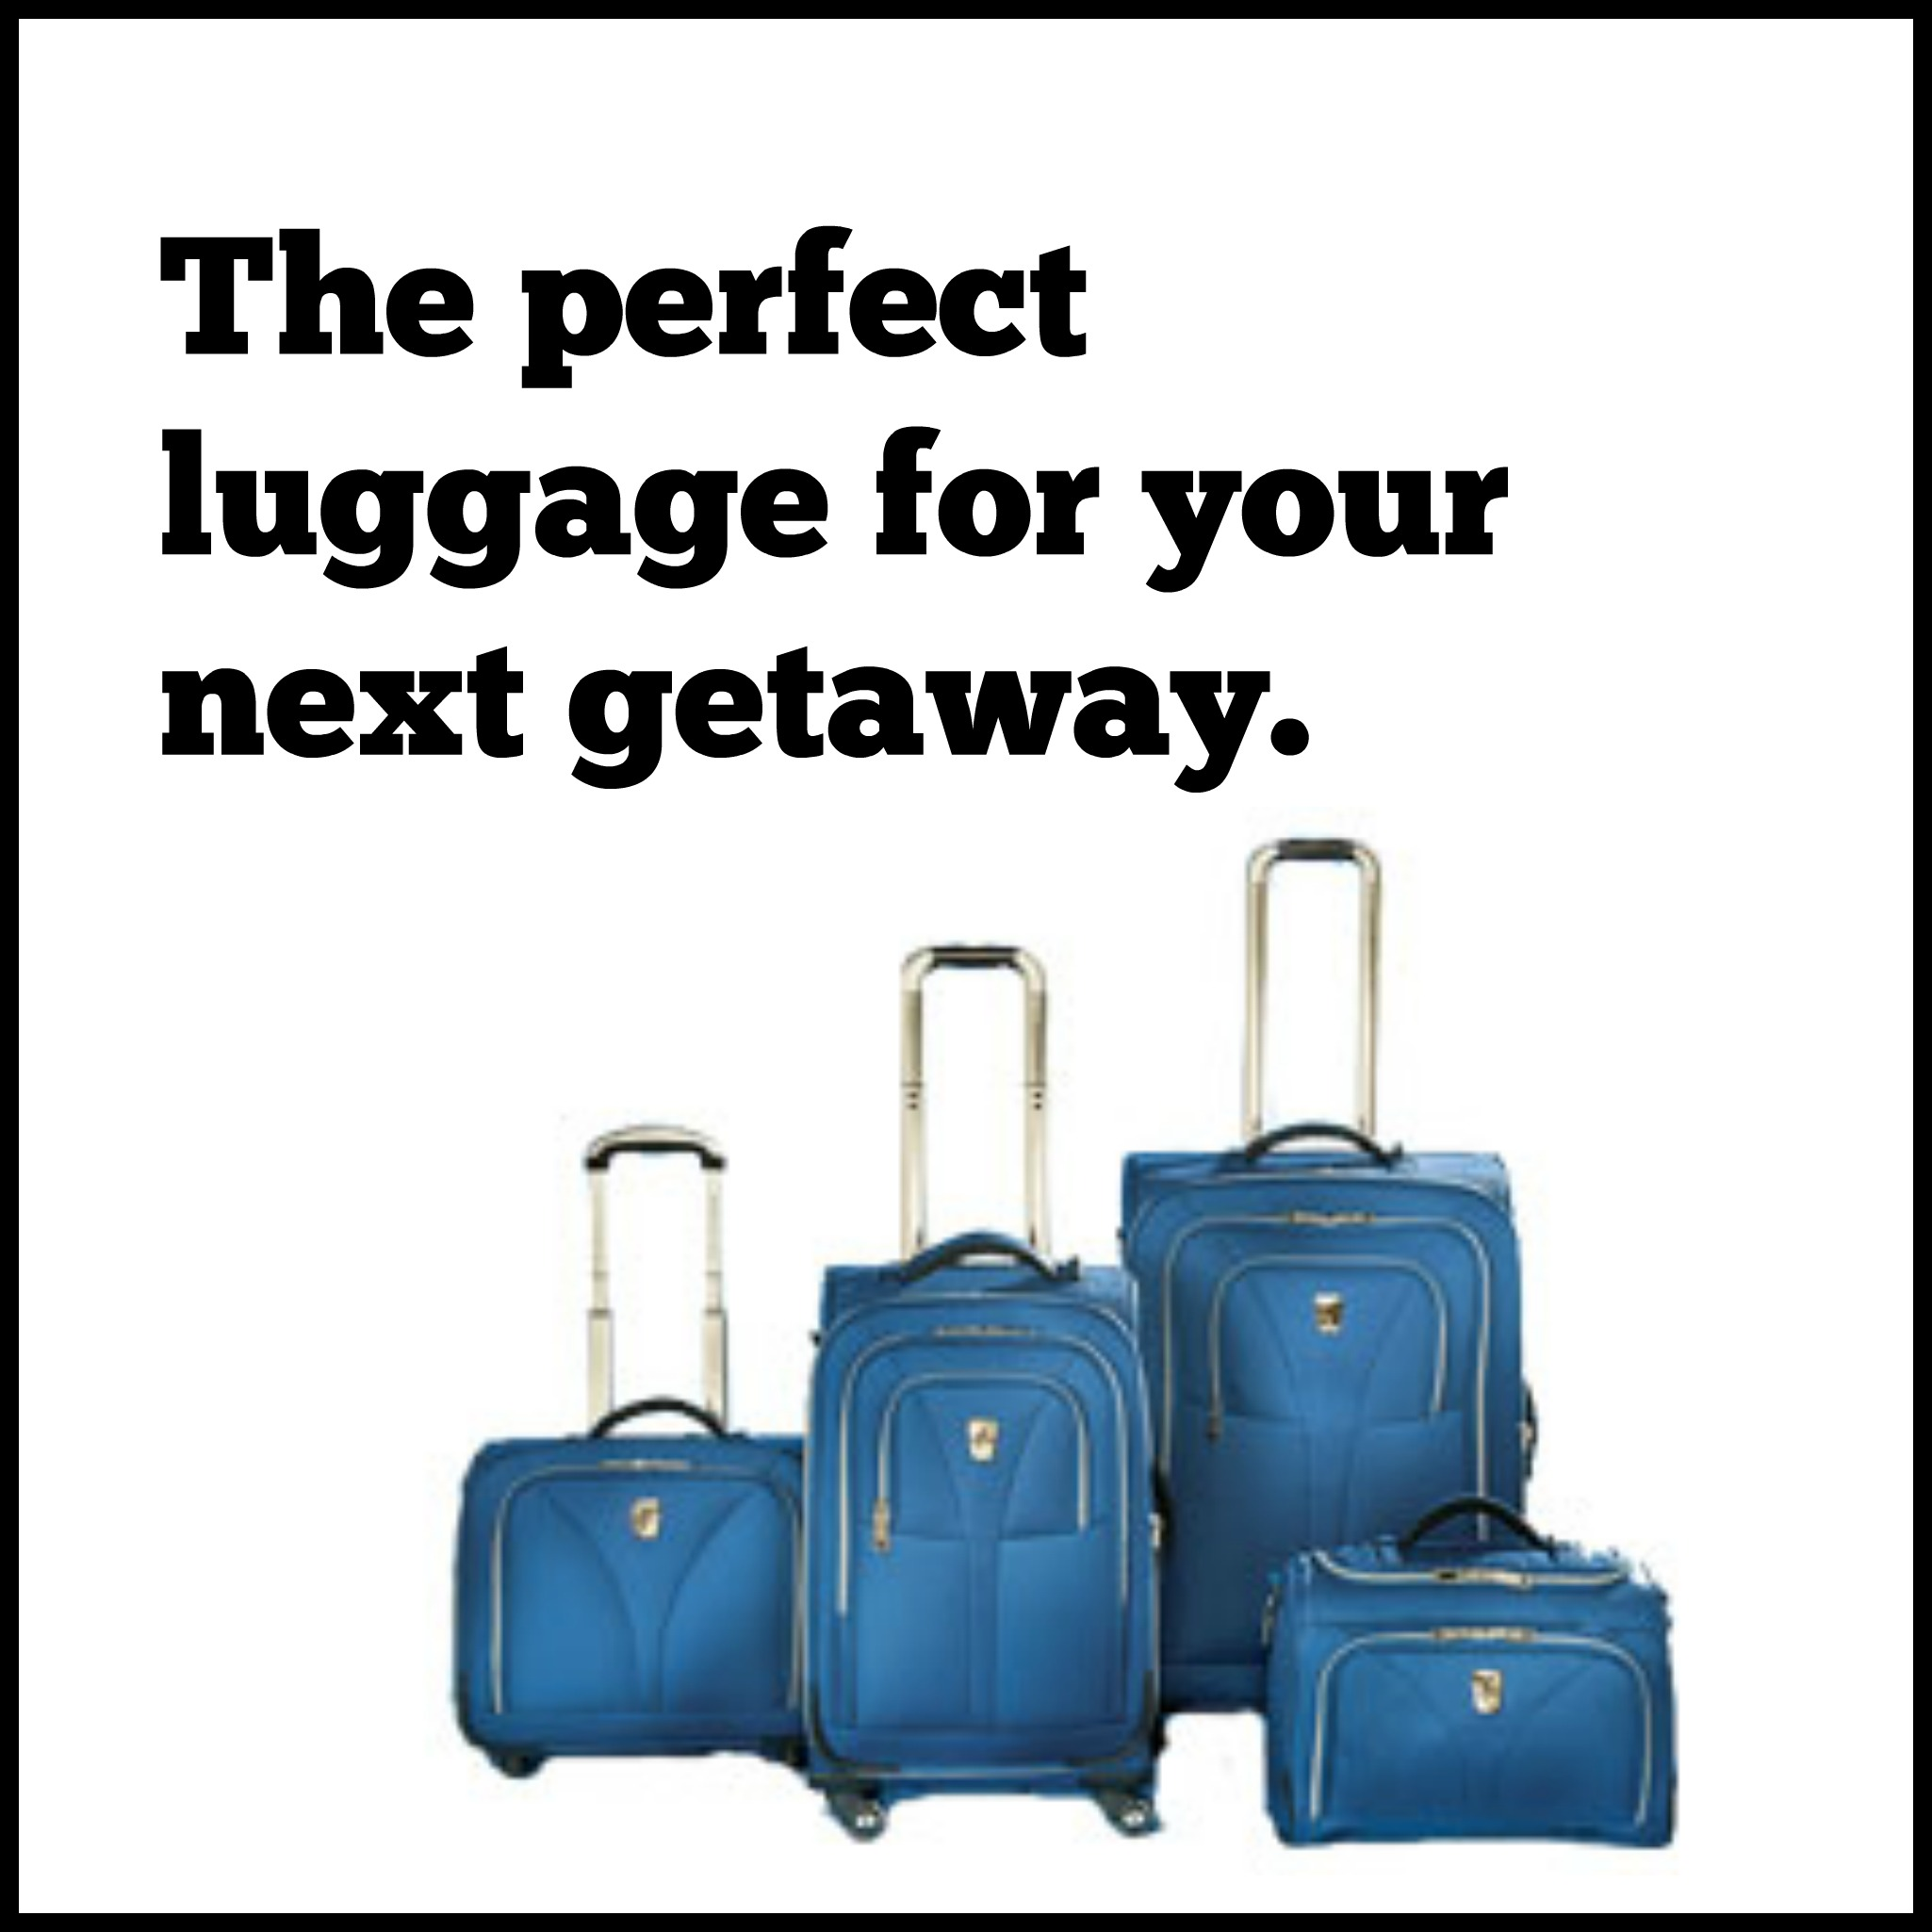 Win a Family Vacation for 4 and travel using Atlantic Luggage #AtlanticLuggage